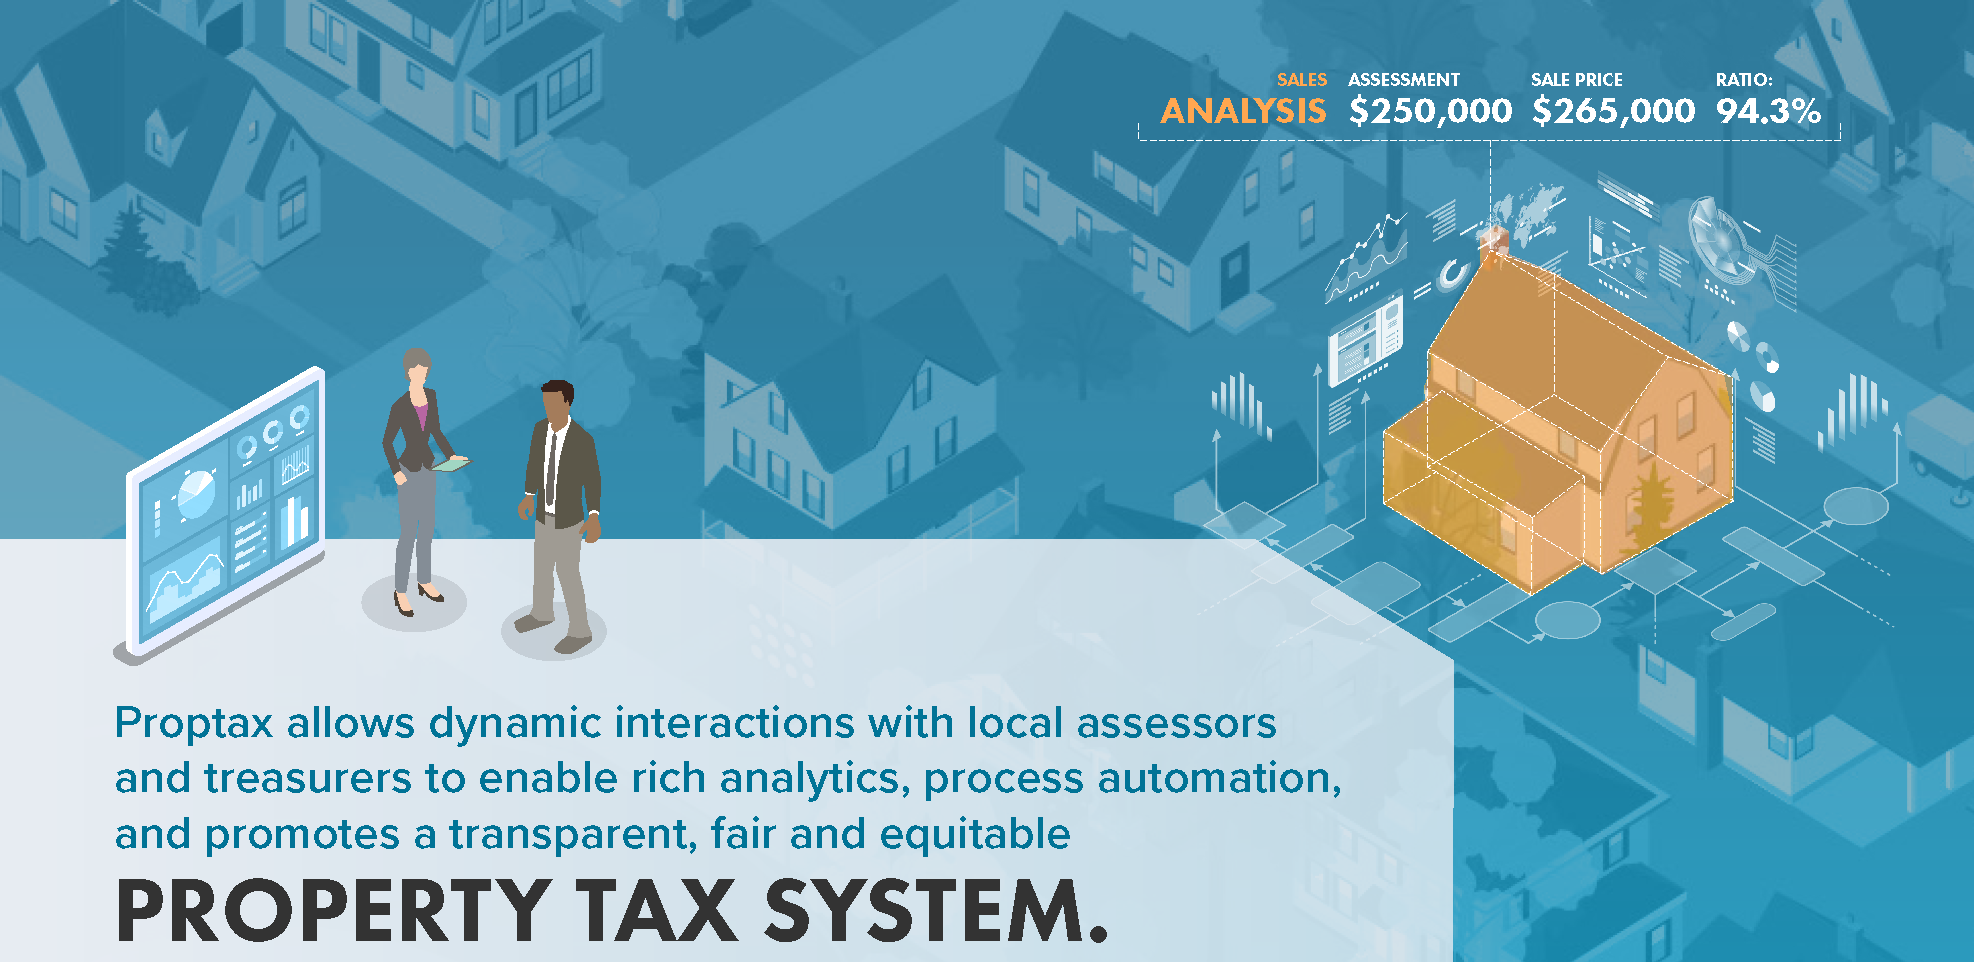 Built for States - Designed specifically for state property tax process and oversight of local taxation.